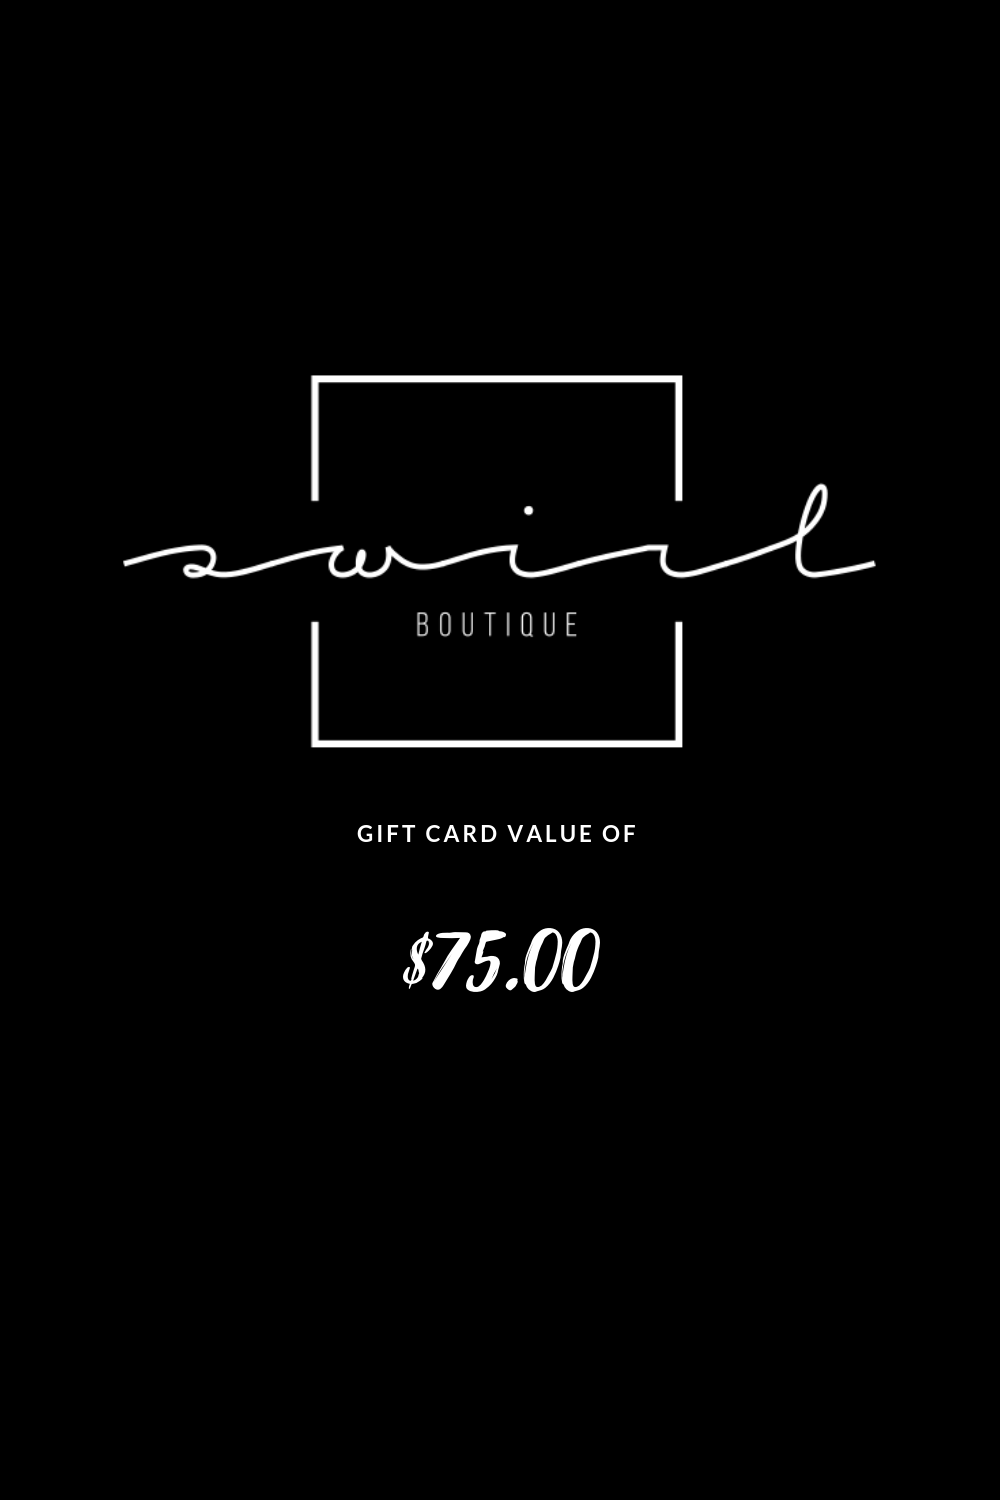 SWIRL BOUTIQUE GIFT CARD - $75